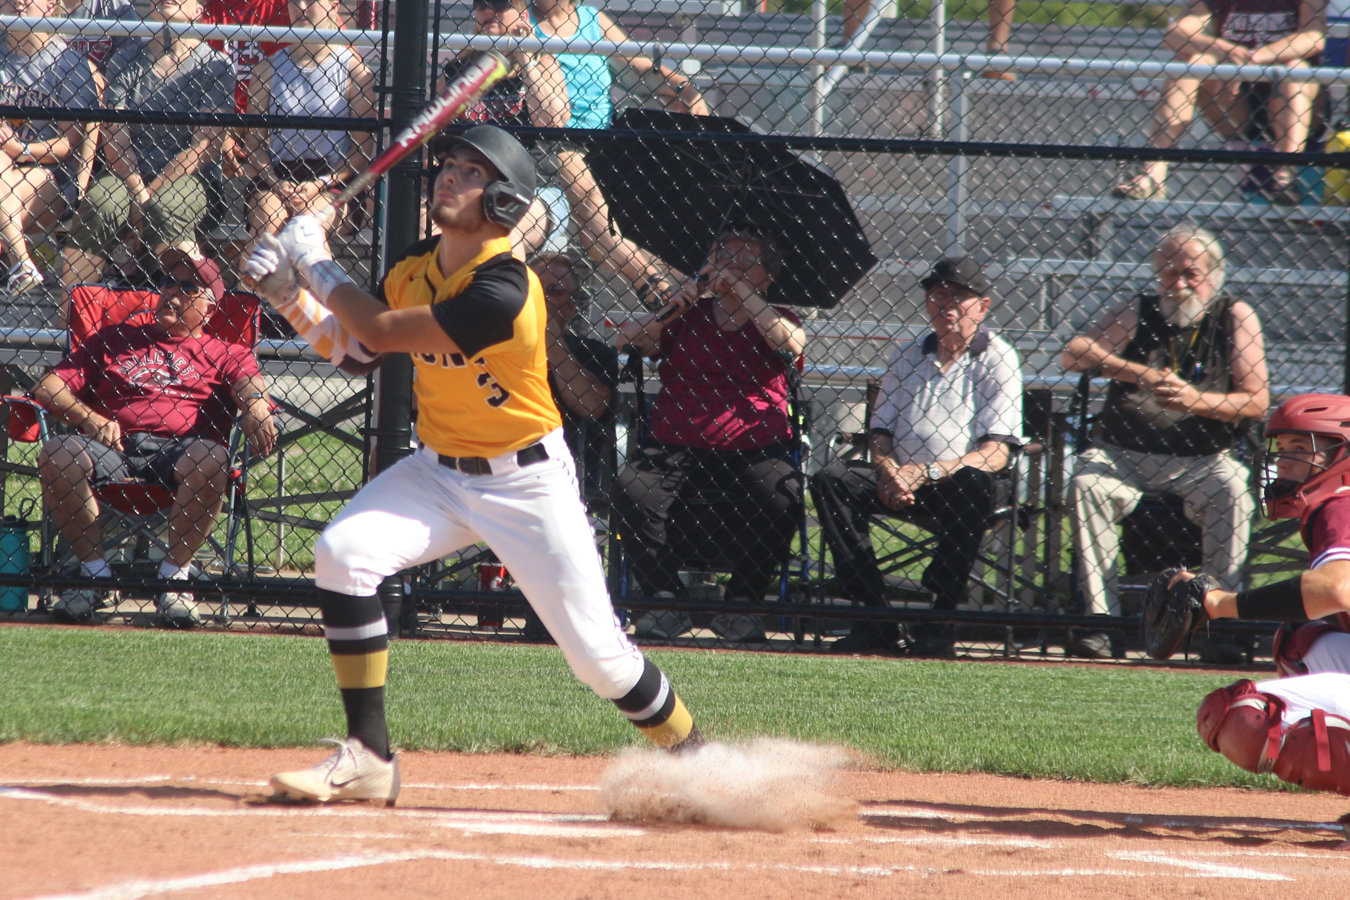 Harmon Miller, shown taking a swing during the Class 1A district tournament, led Lone Tree with a .441 batting average this season.